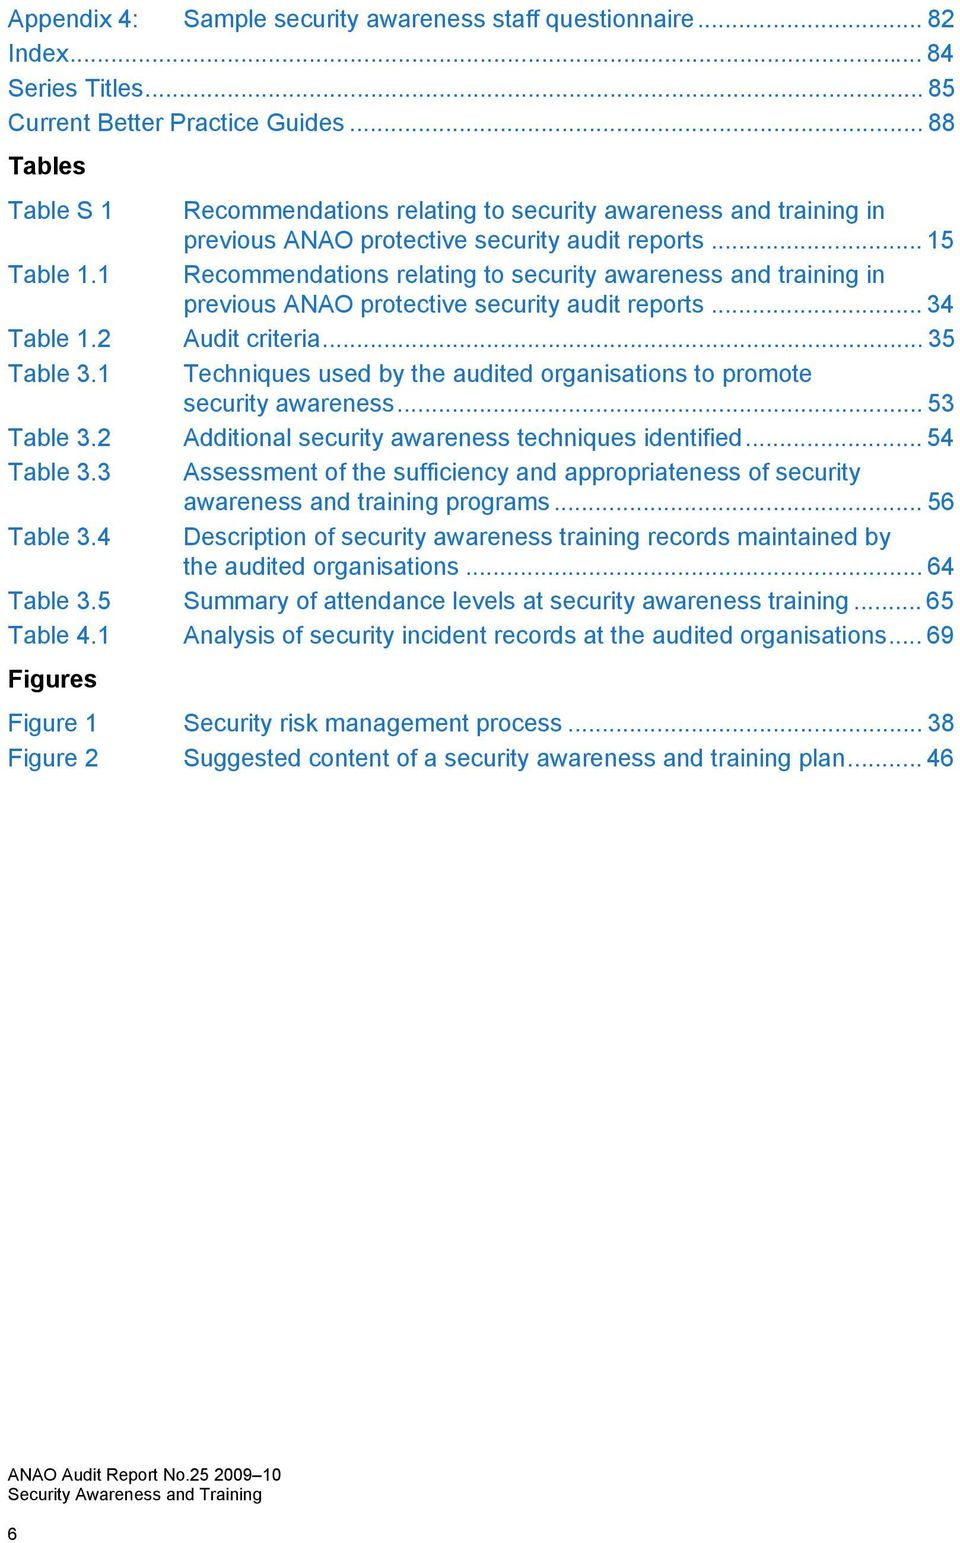 1 Recommendations relating to security awareness and training in previous ANAO protective security audit reports... 34 Table 1.2 Audit criteria... 35 Table 3.